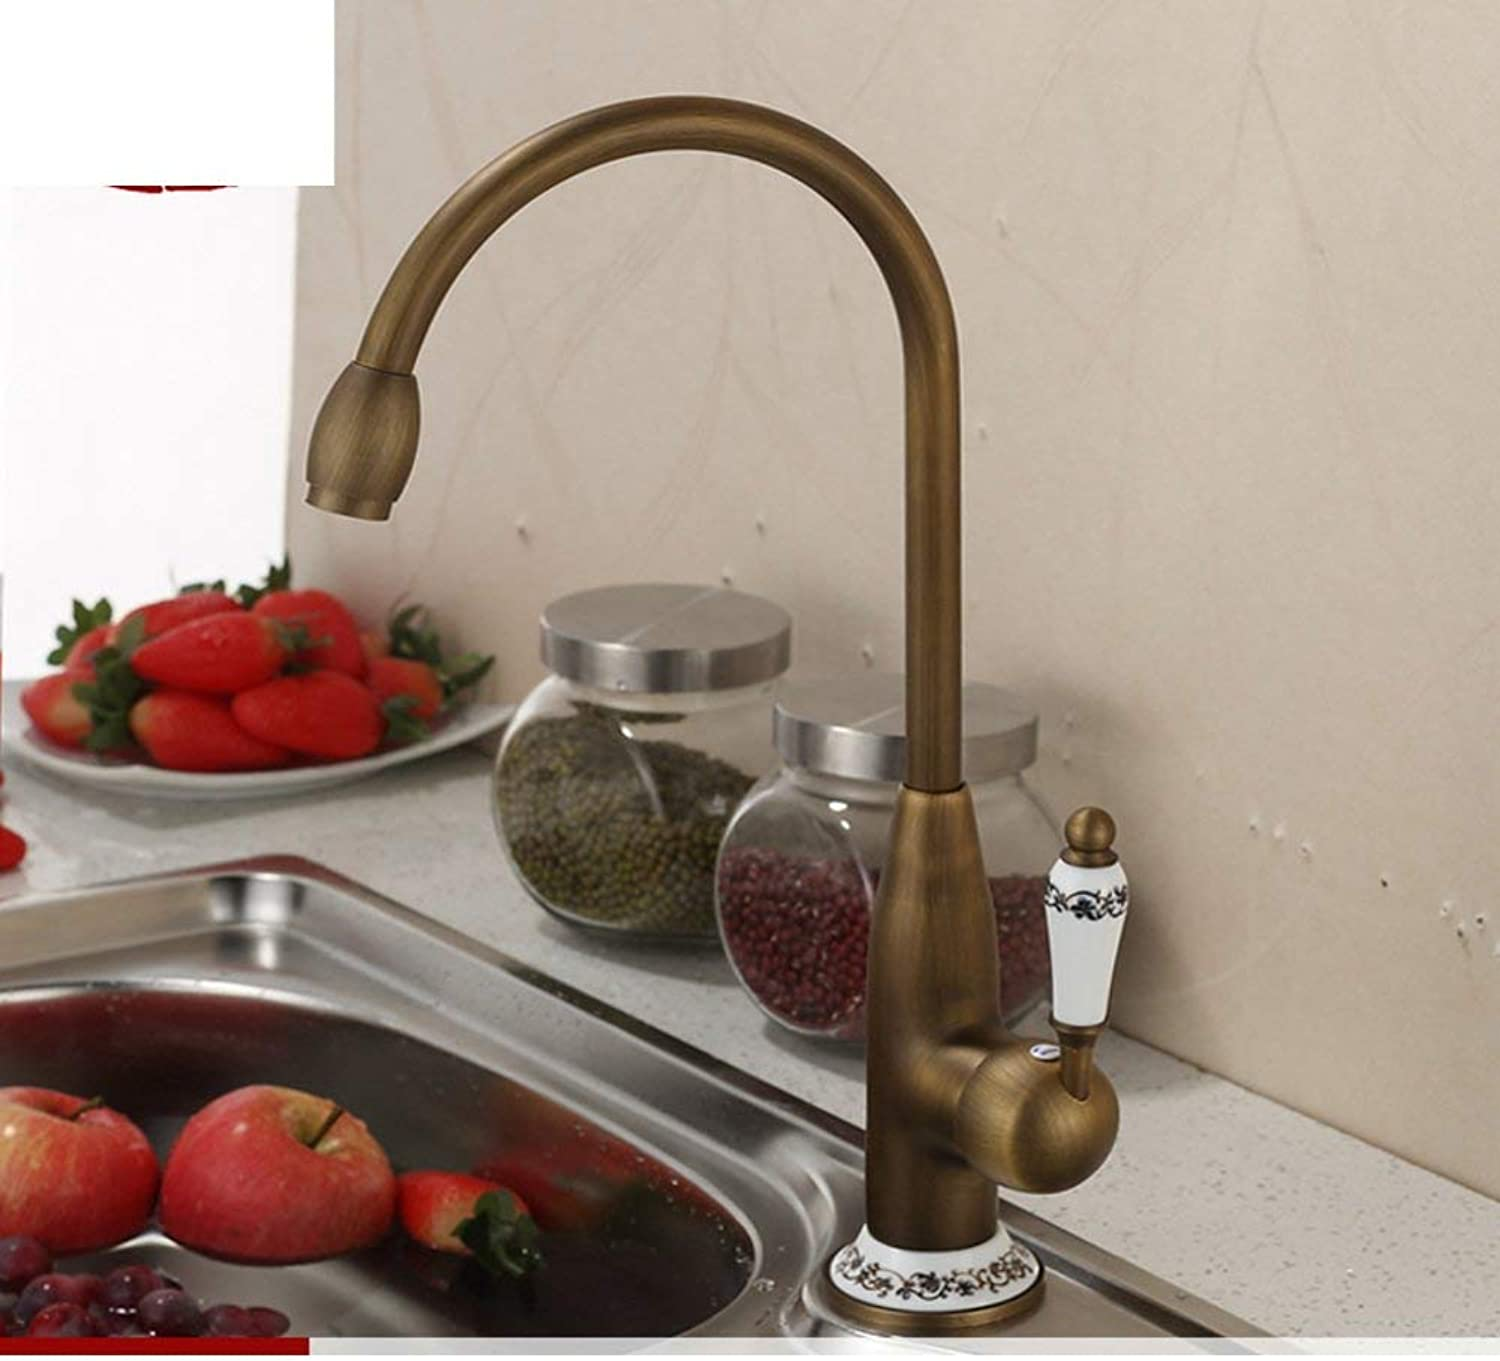 FuweiEncore European antique All copper basin hot and cold taps Kitchen sink faucet redatable-B (color   -, Size   -)